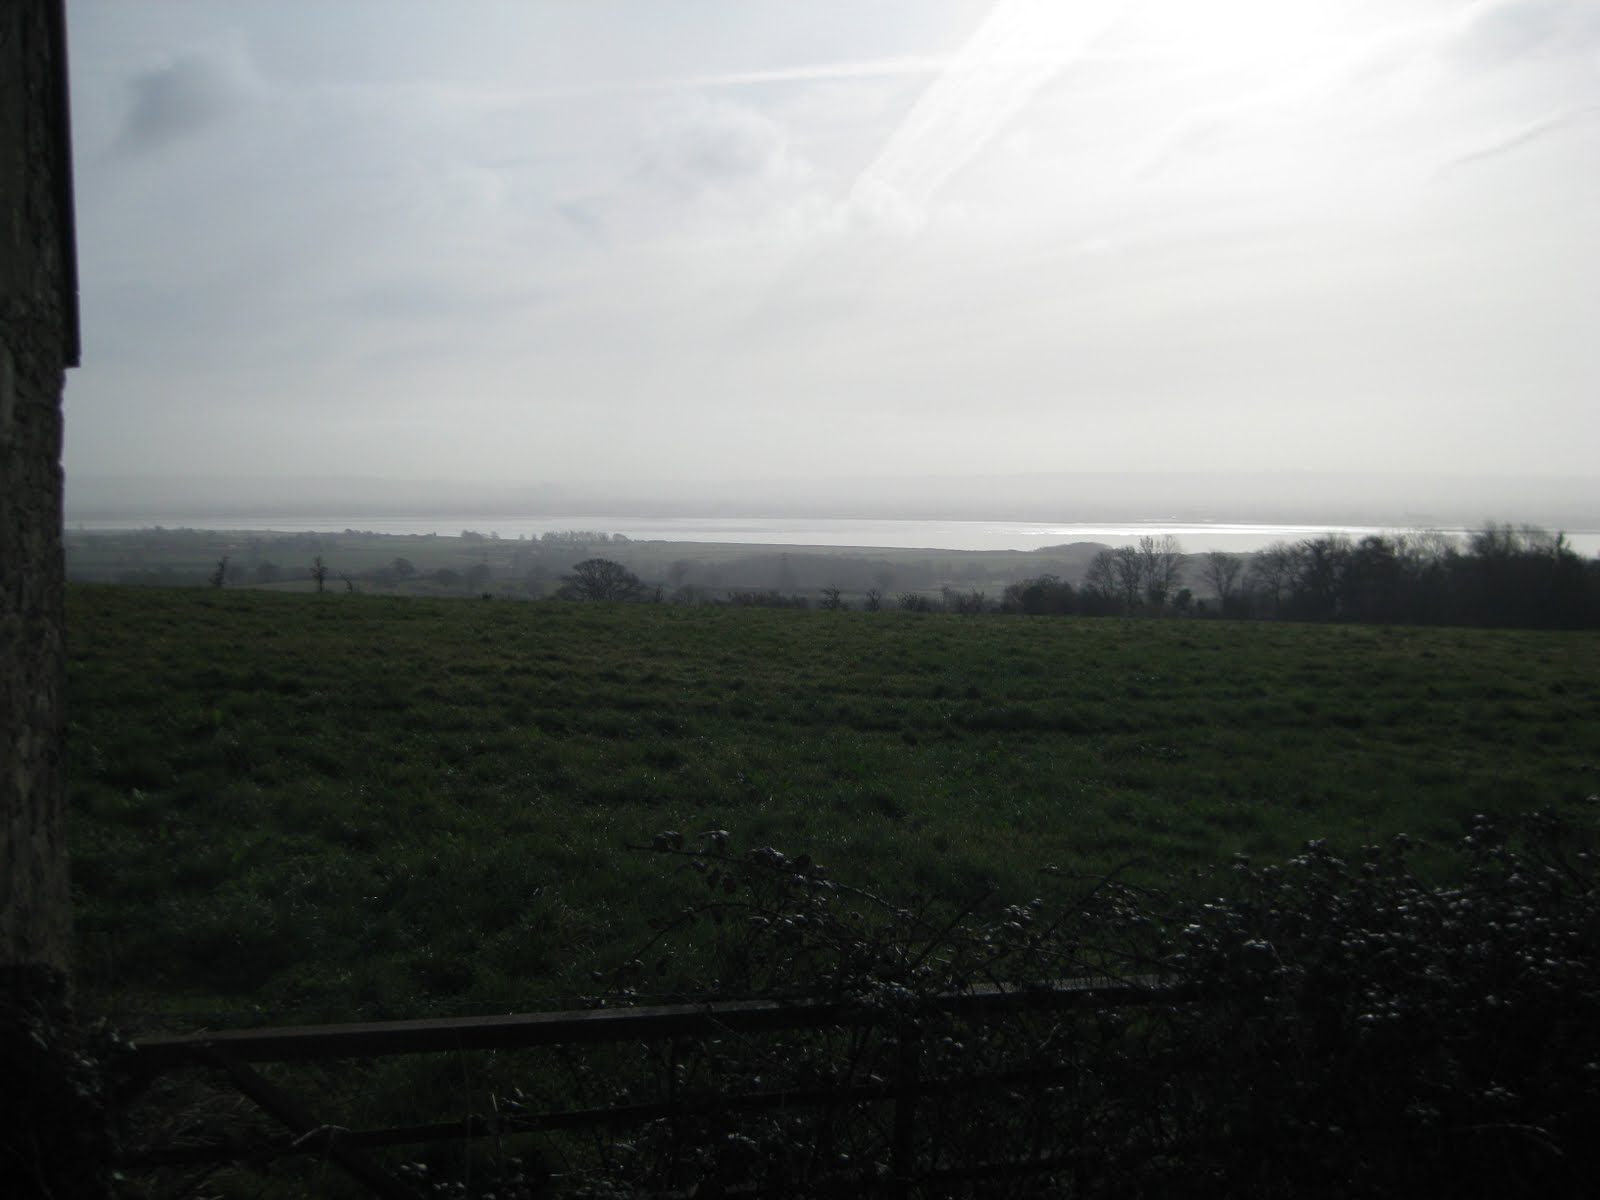 Overlooking the Severn